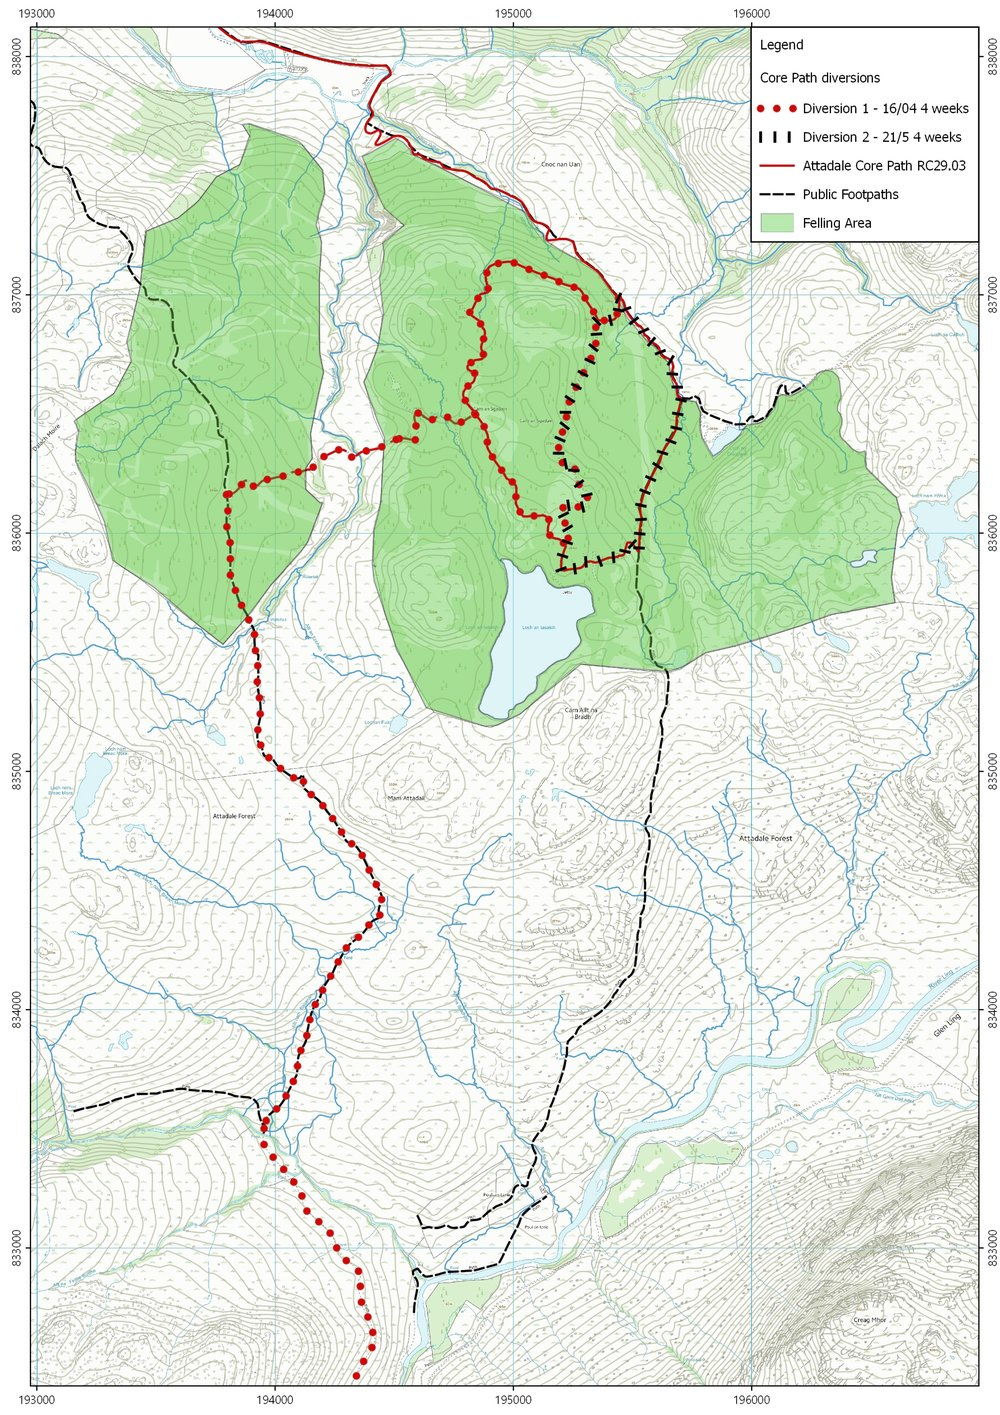 Core path Diversion WEBSITE MAP.jpg